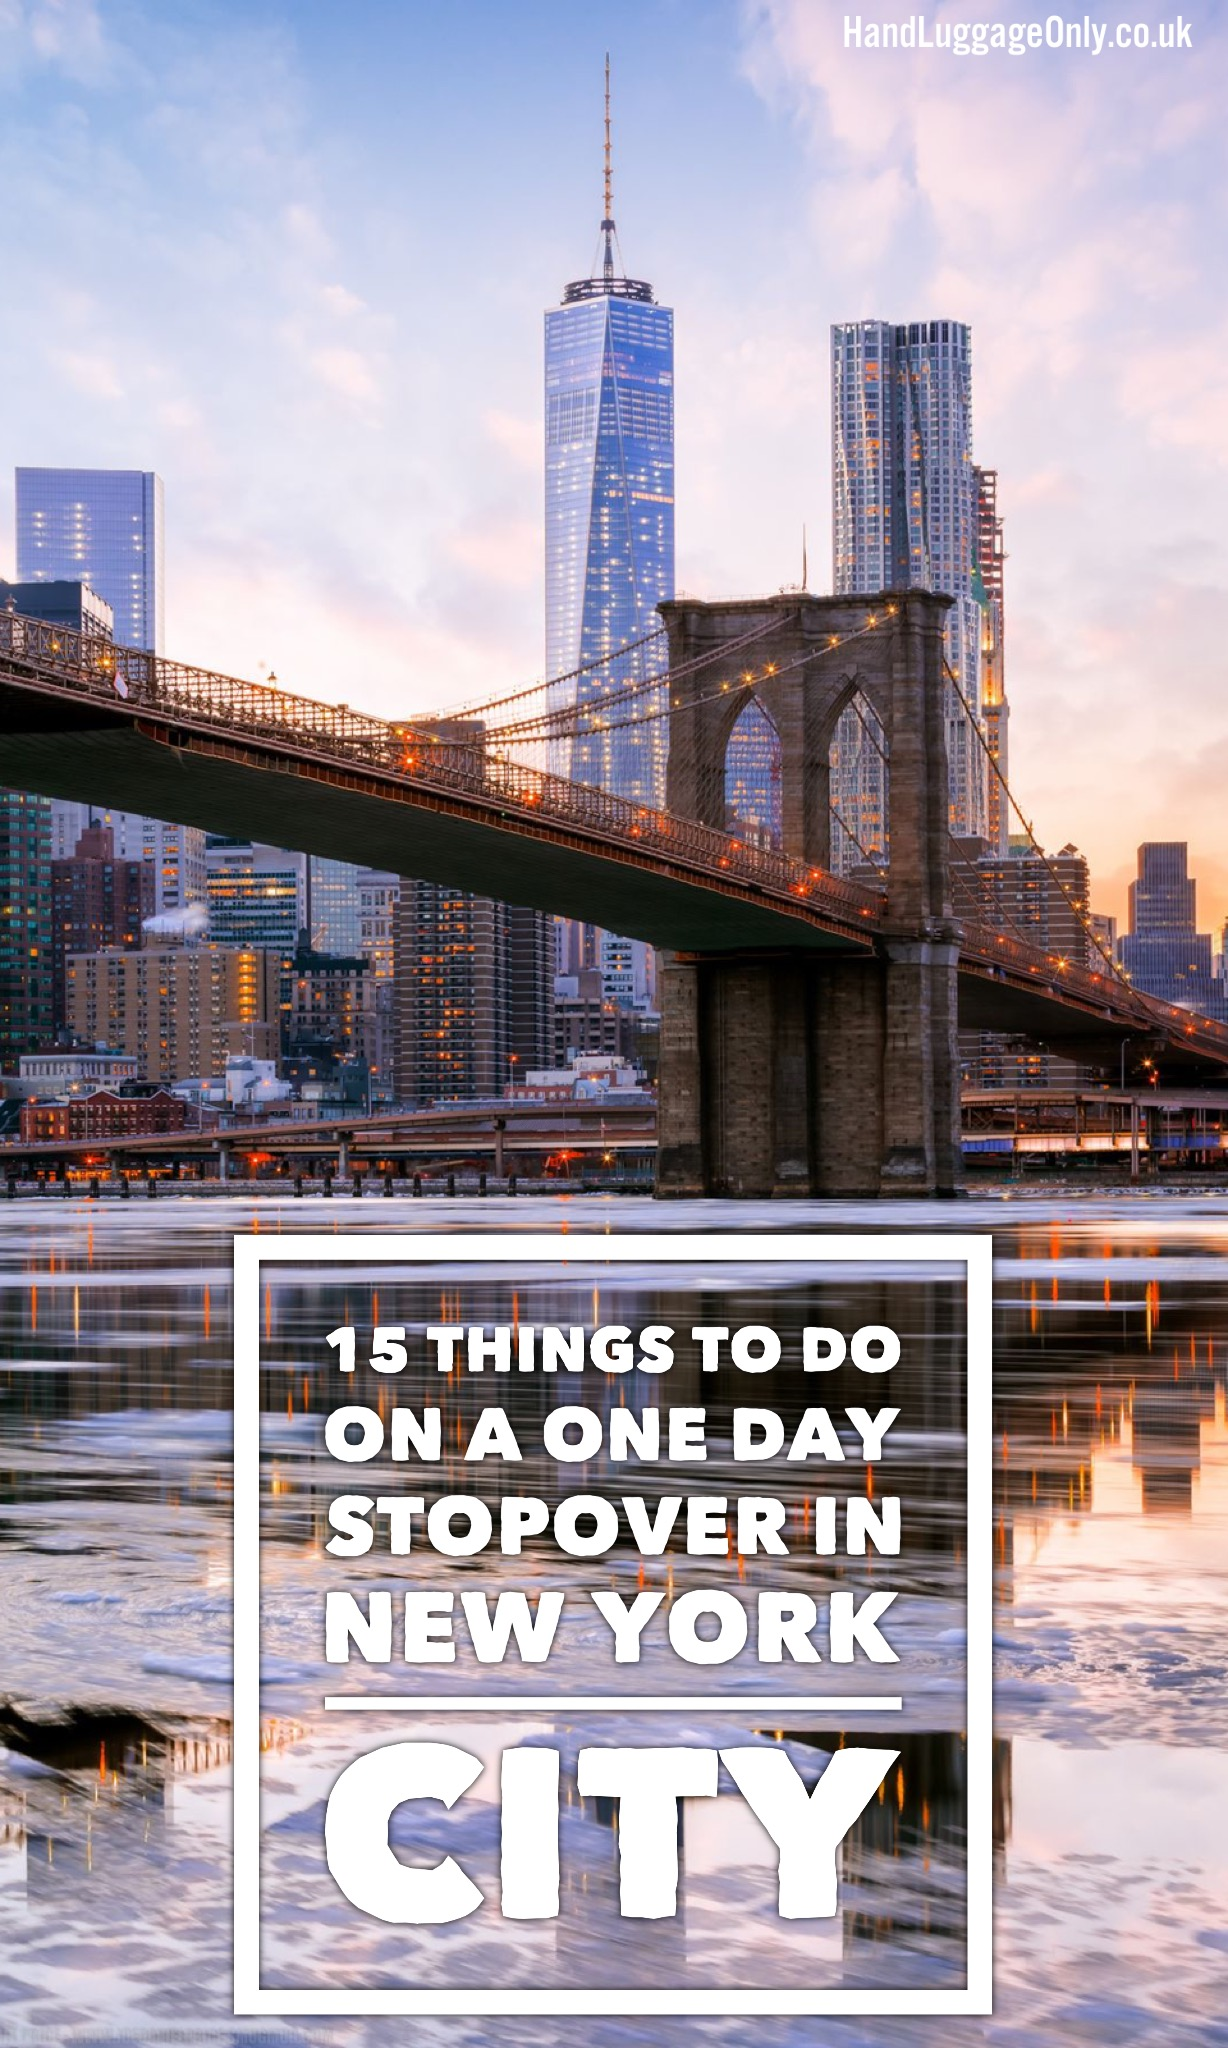 15 things to do on your 1 day stopover in new york city